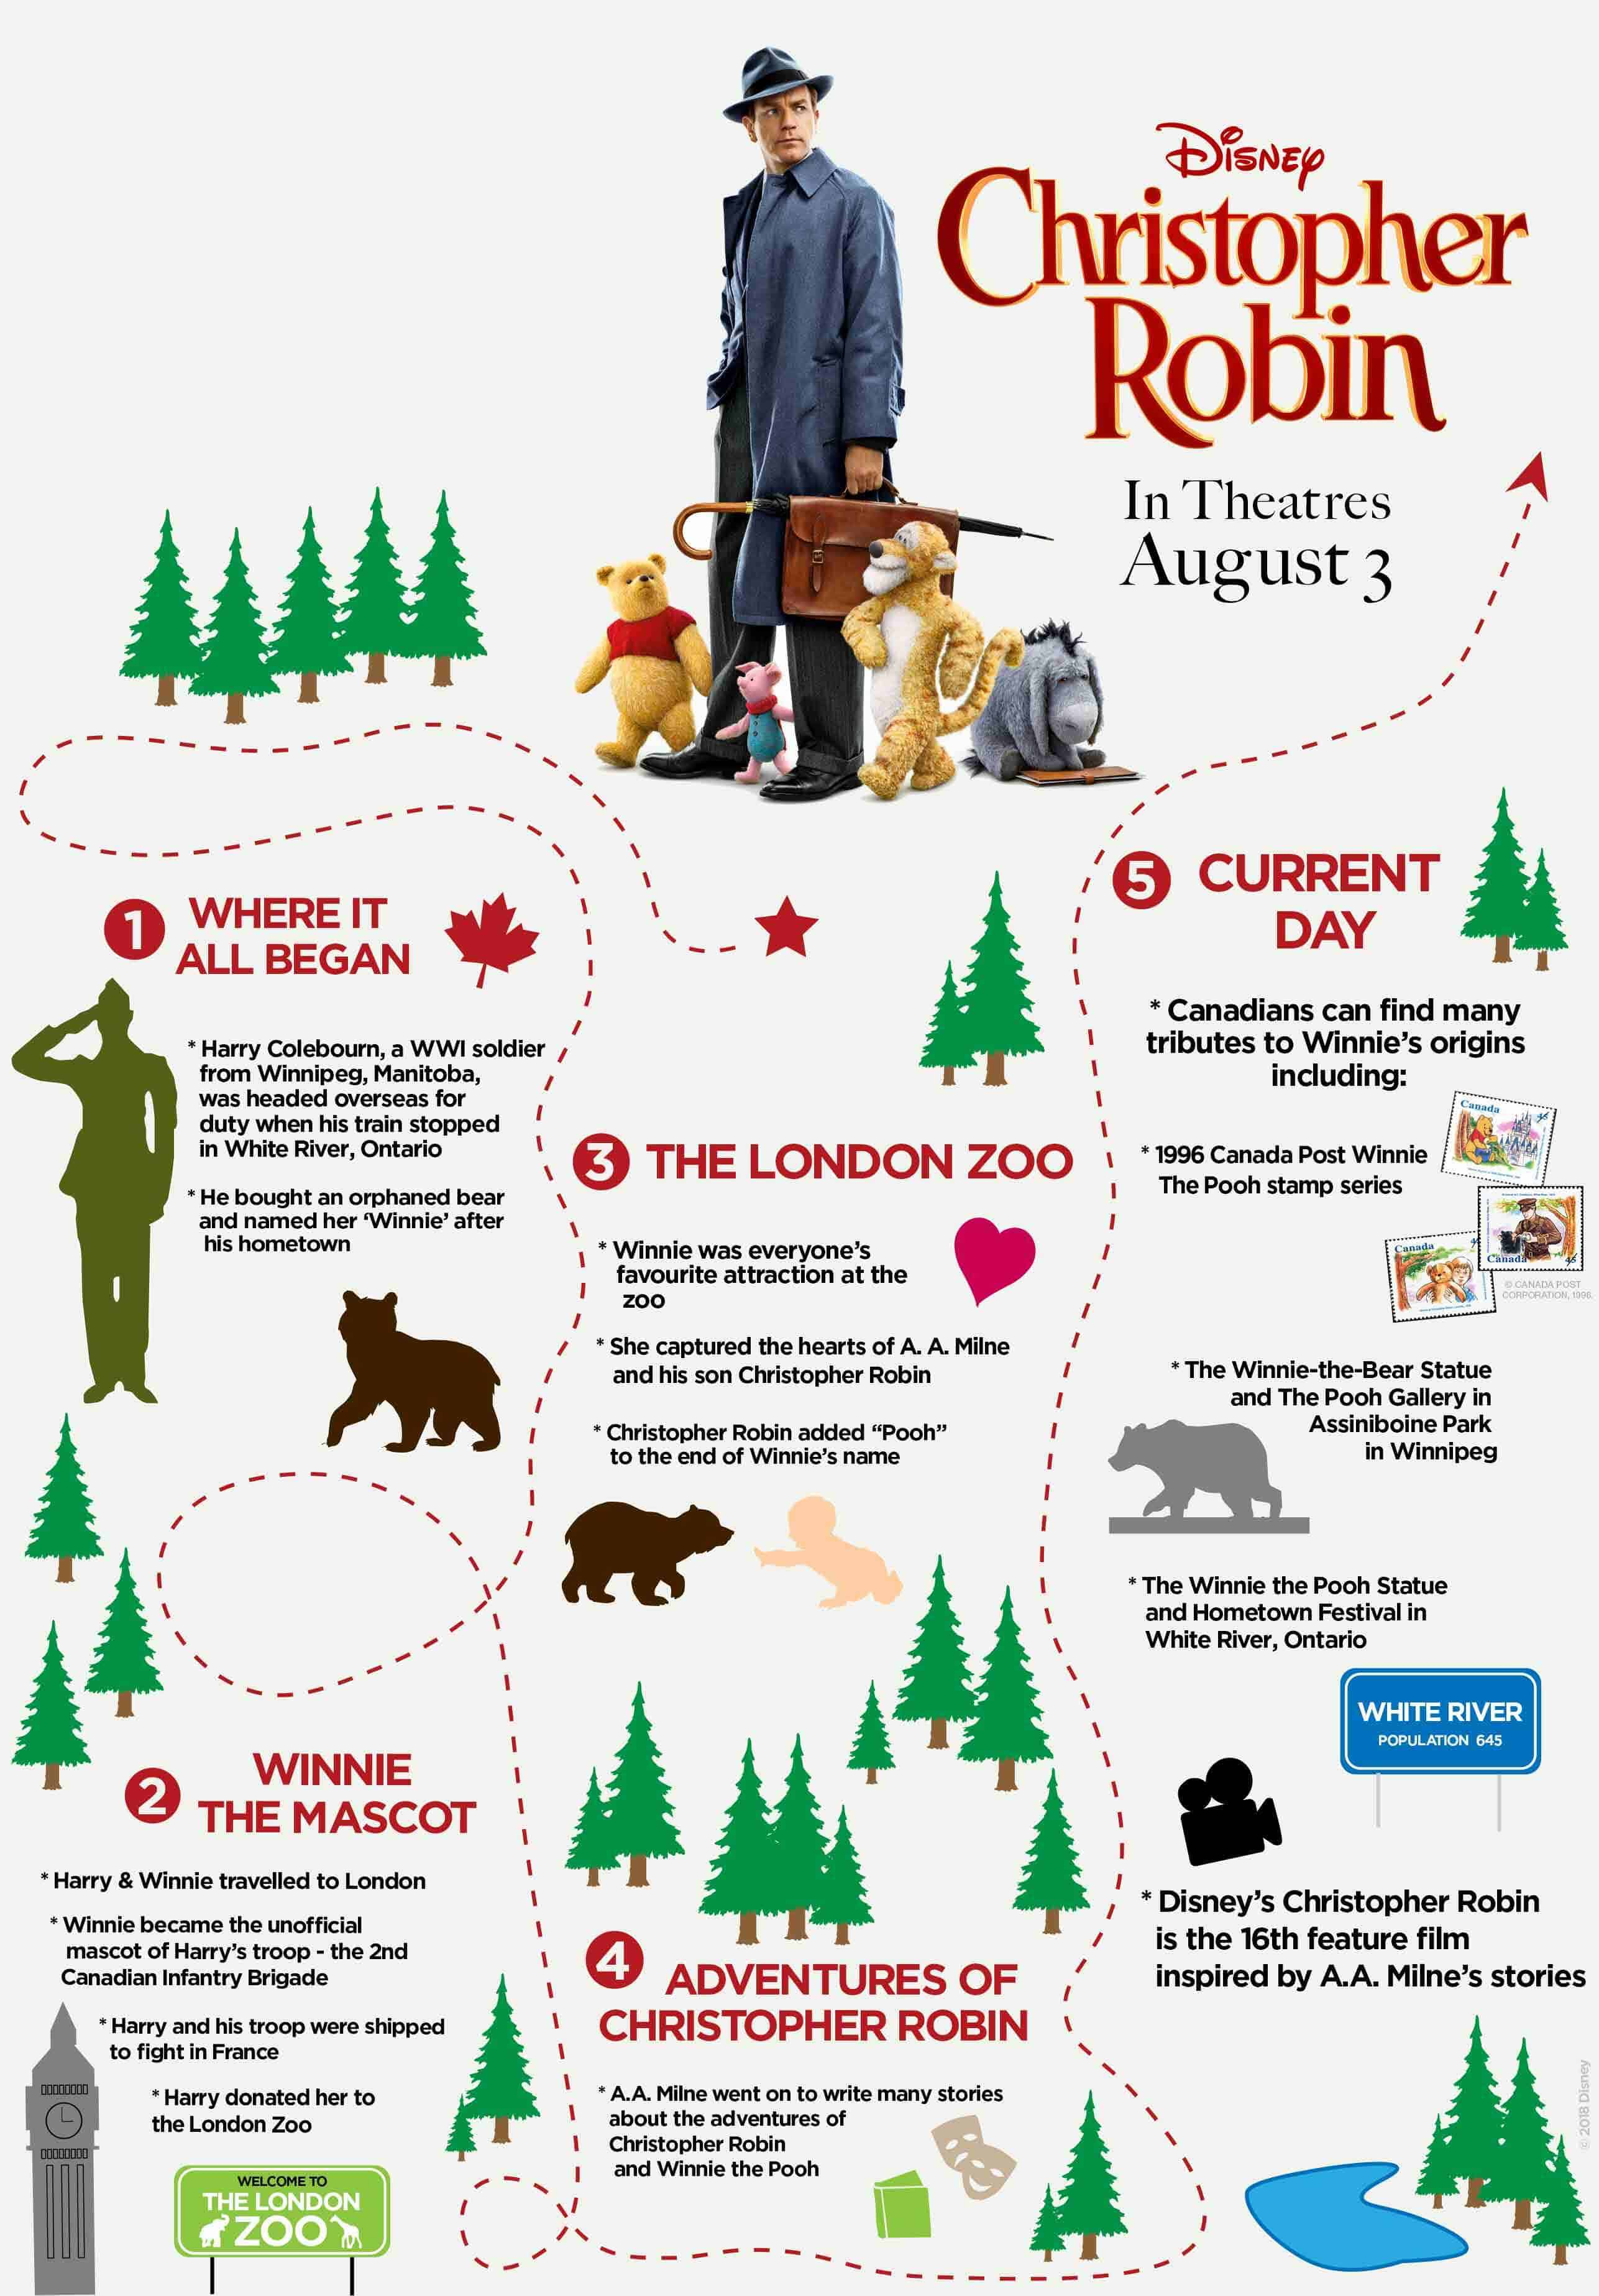 Winnie The Pooh journey from Winnipeg to the Hundred Acre Wood